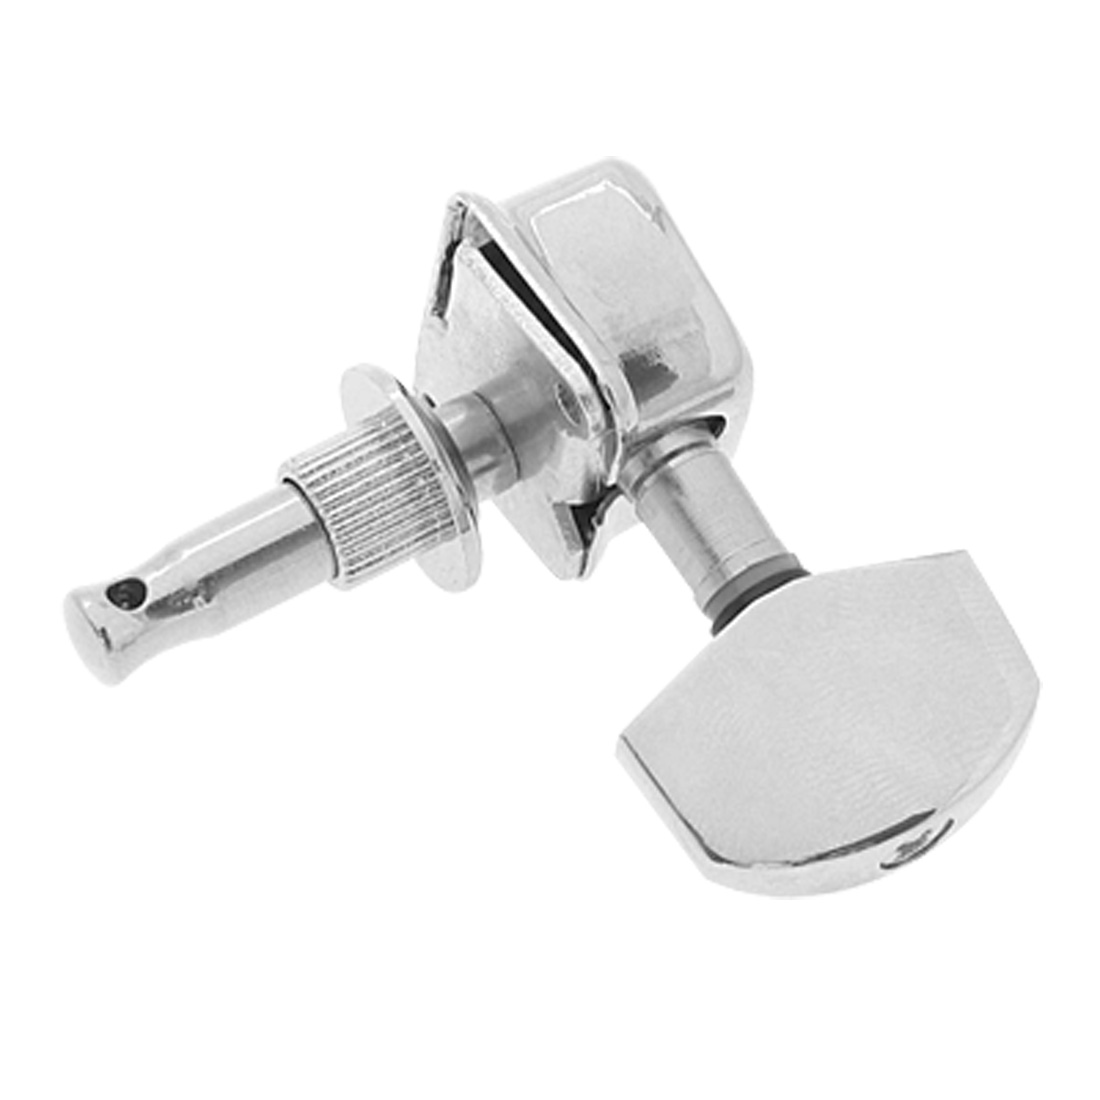 Electric Guitar Tuner Tuning Key Silvery 002